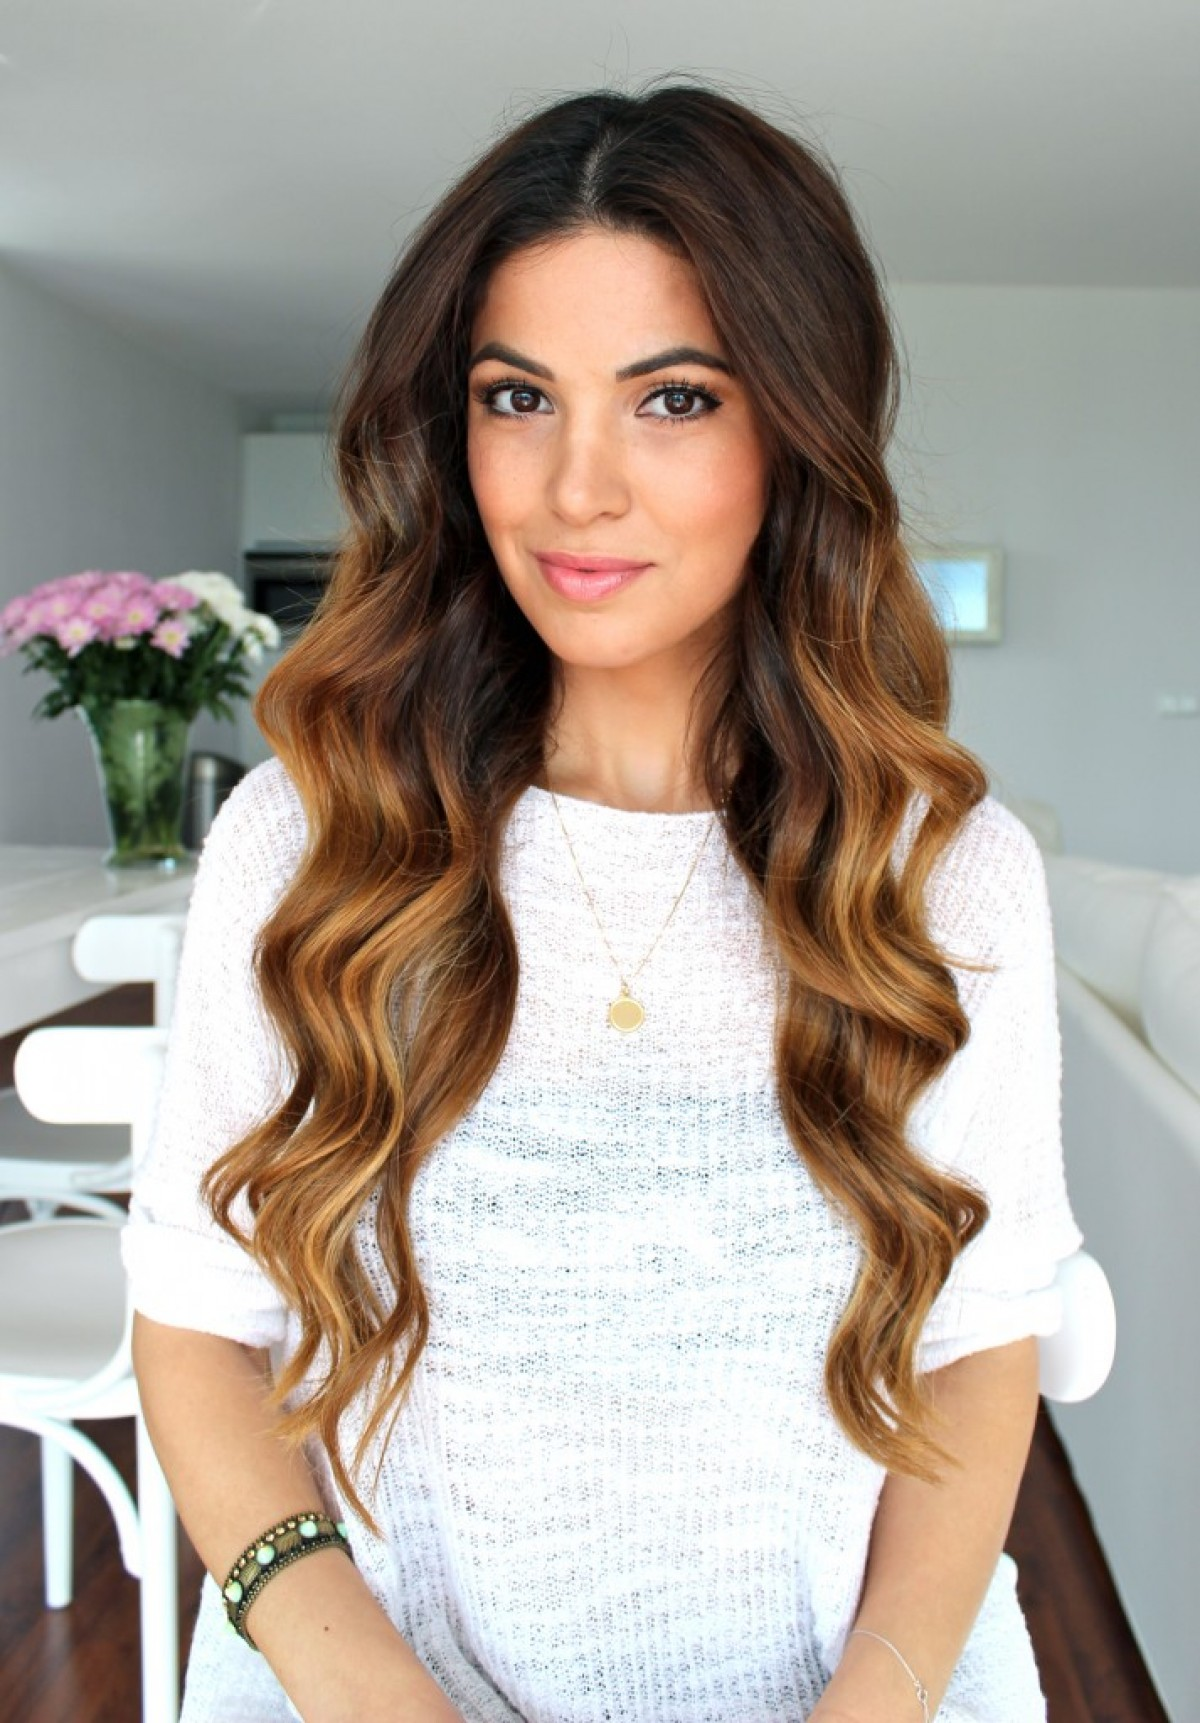 New Hairstyle For Women With Long Hair hairstyle ideas